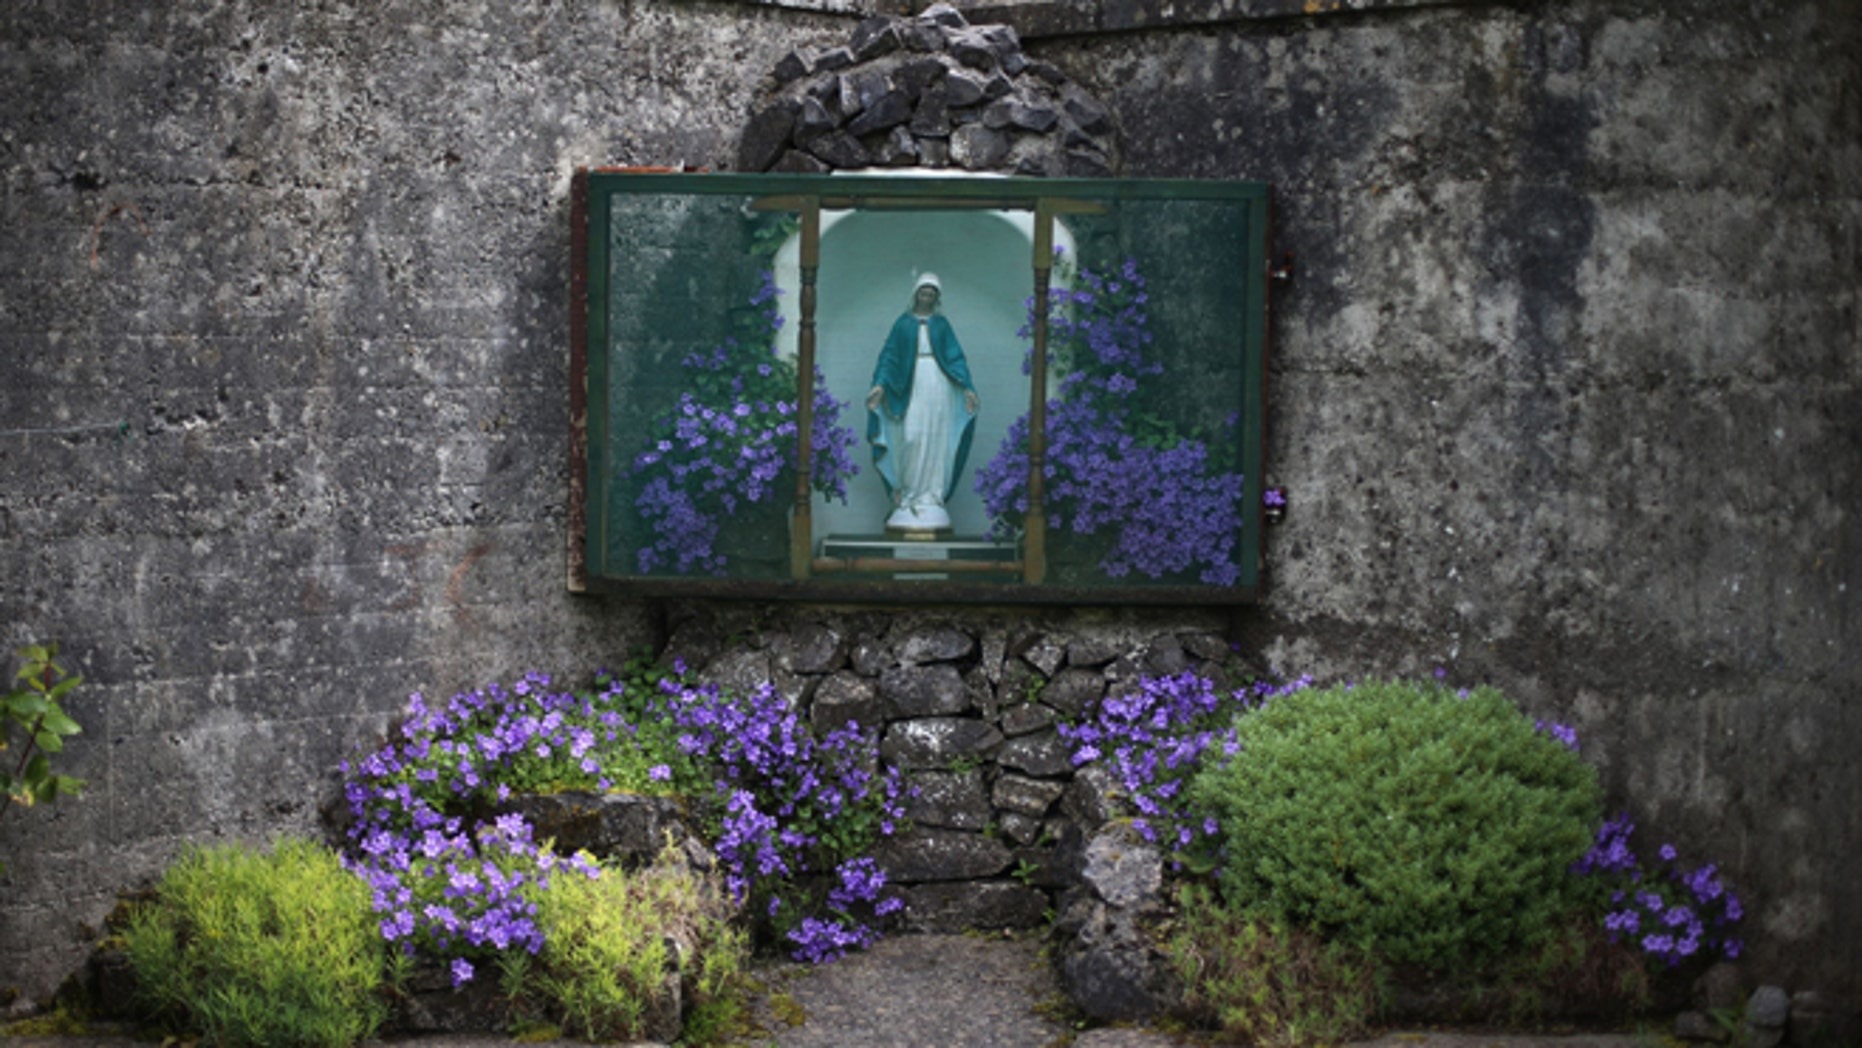 June 4, 2014: A statue of the Virgin Mary adorns the site of a mass grave for children who died in the Tuam mother and baby home in Tuam, Ireland. (AP/Niall Carson/PA)